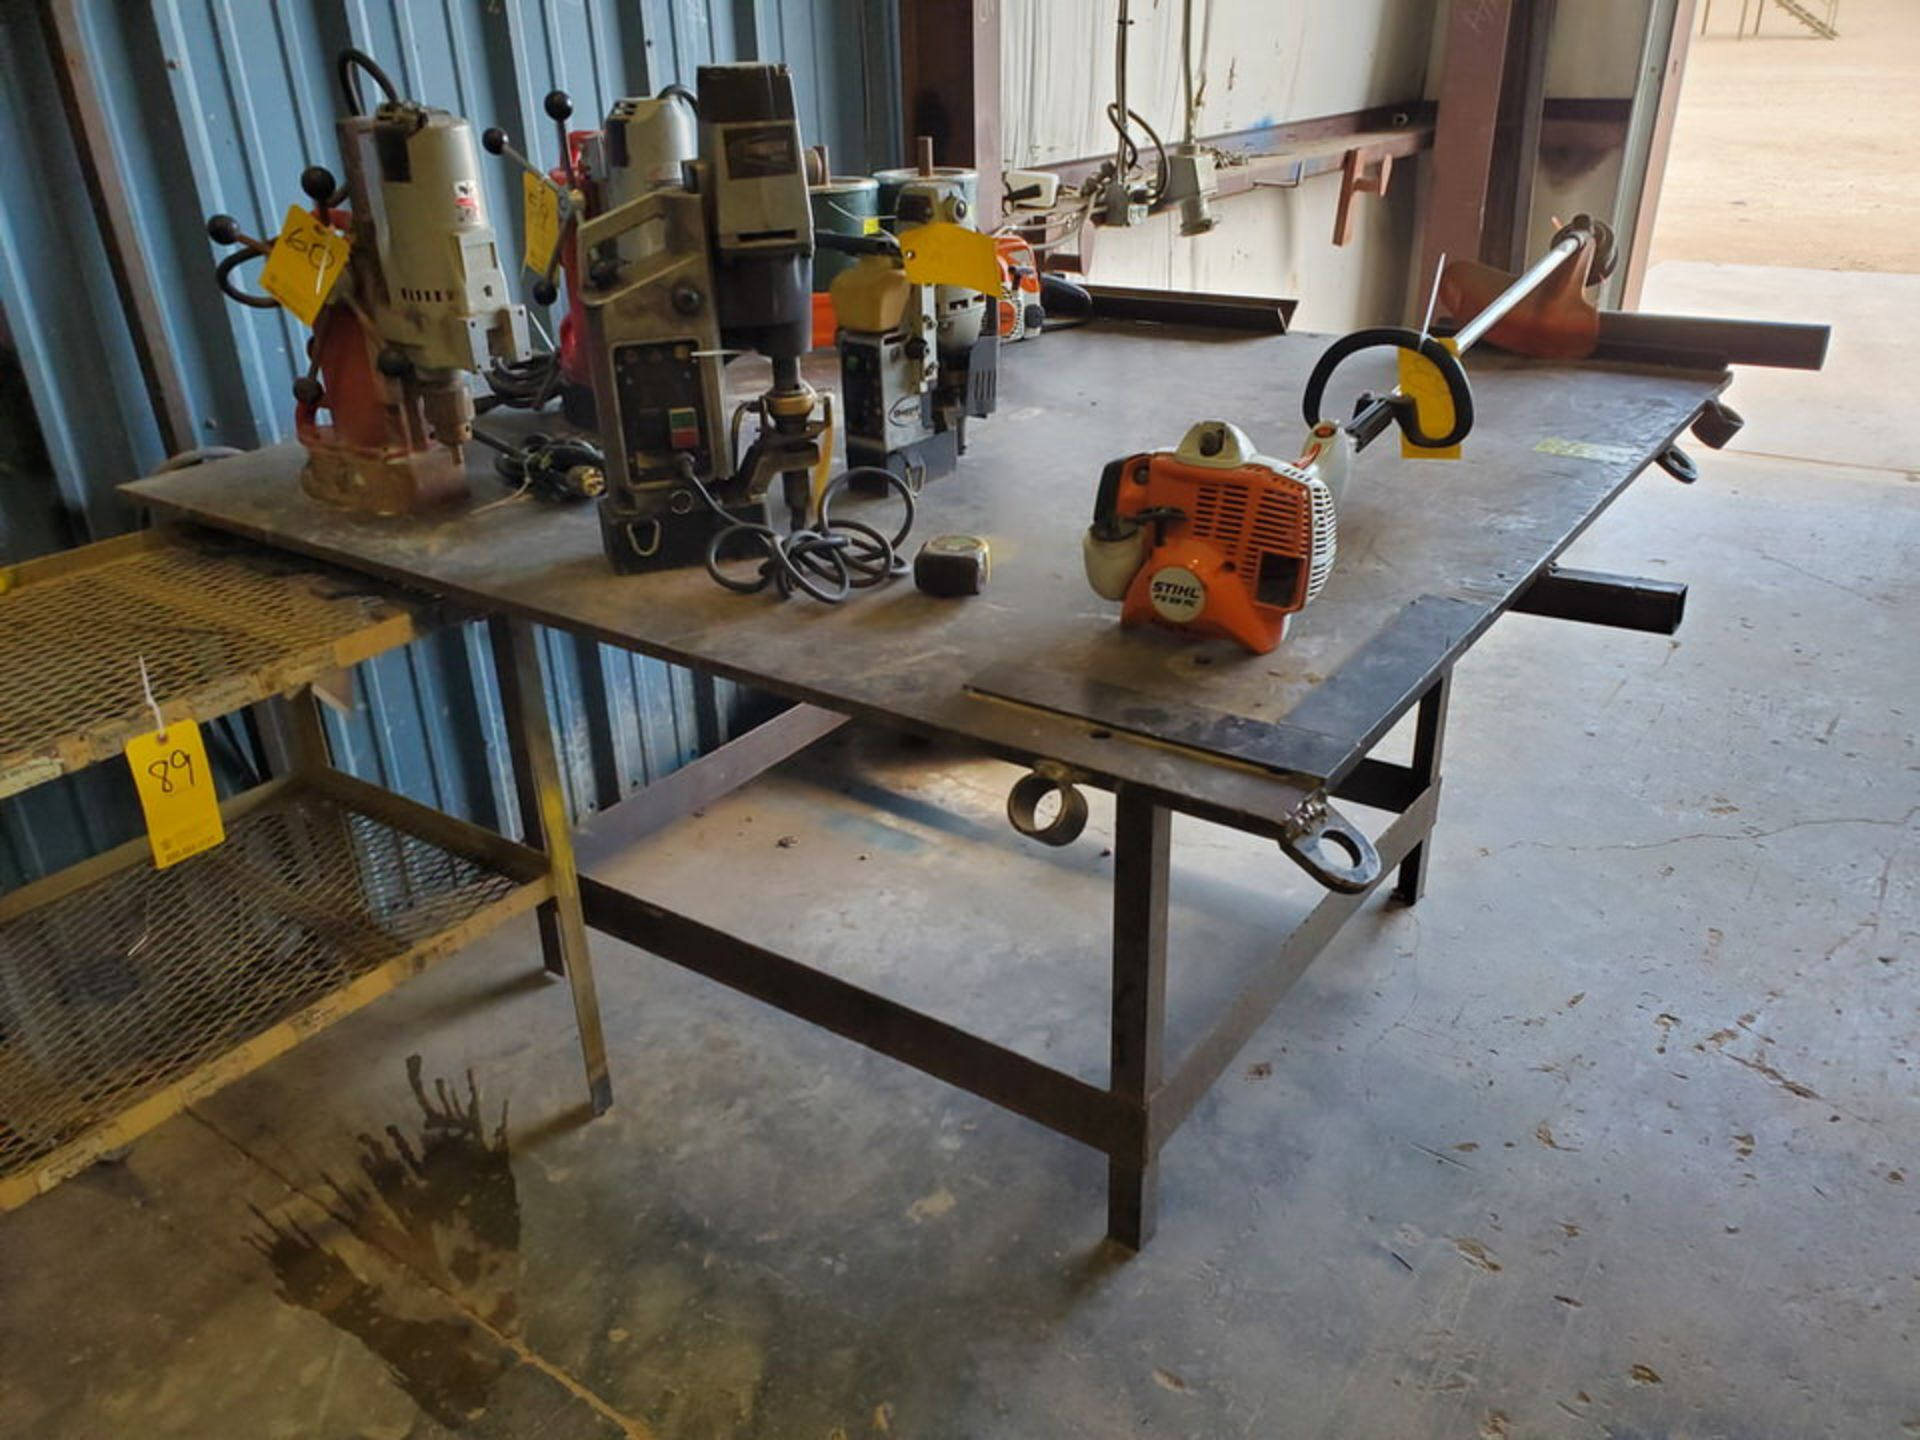 """(2) Stl Welding Tables (1) 72"""" x 72"""" x 37'H; (1) 51"""" x 54"""" x 37""""H - Image 2 of 8"""